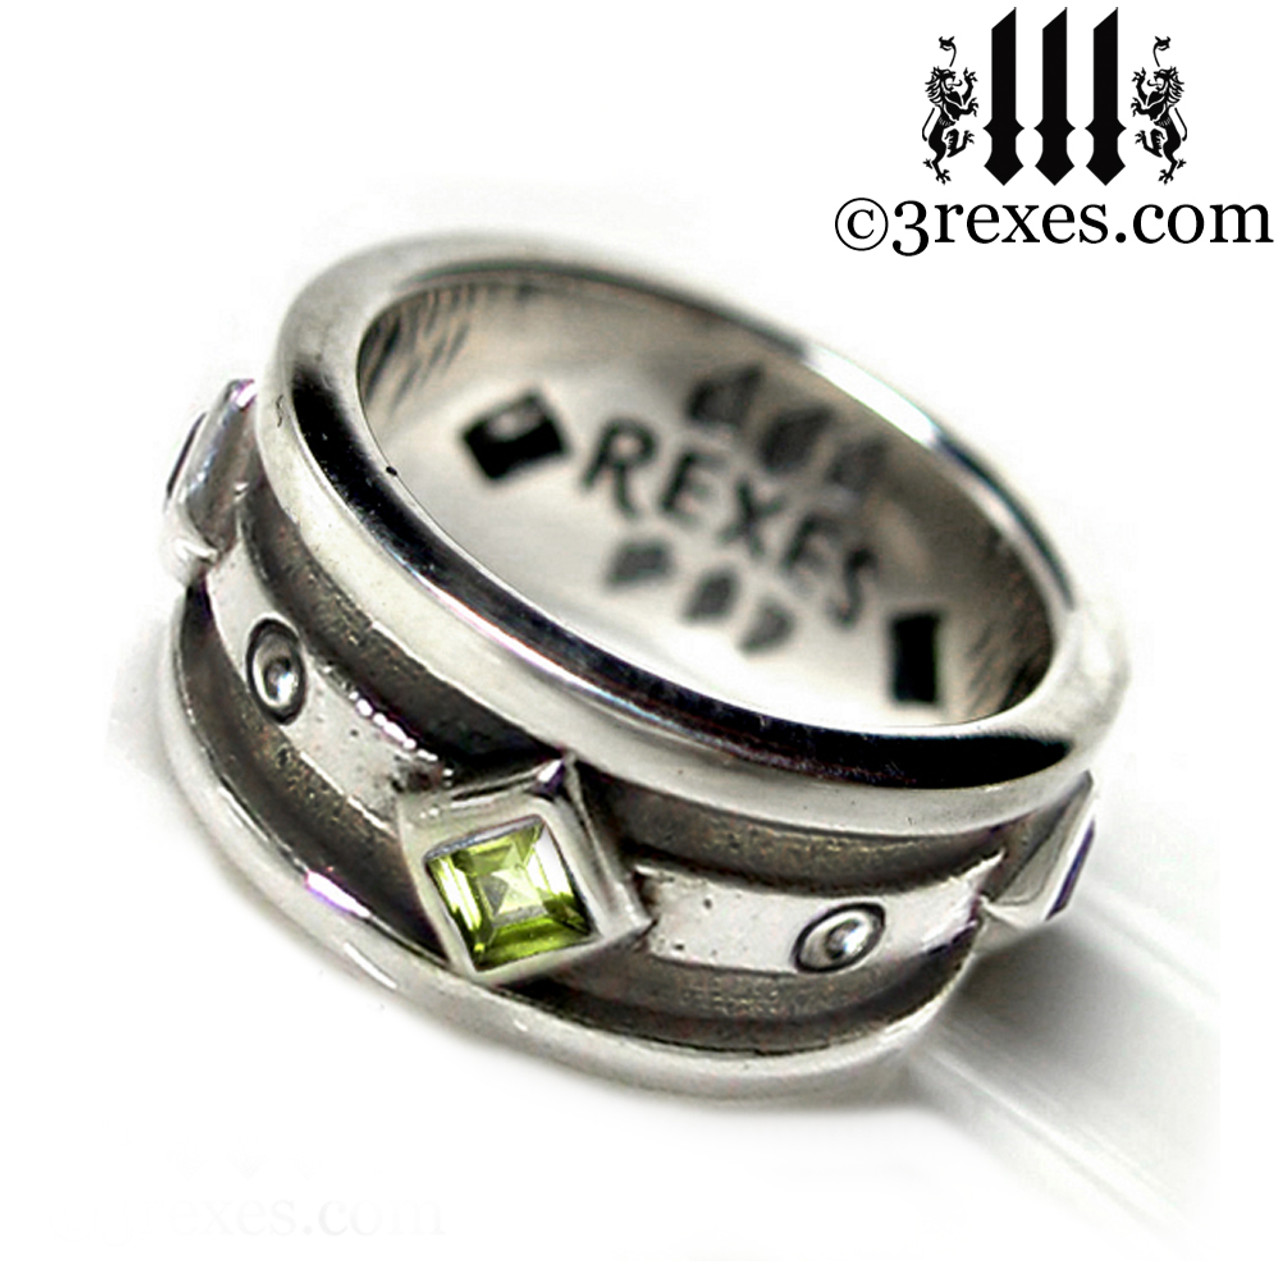 Moorish Gothic .925 Sterling Silver Wedding Ring With Green Peridot